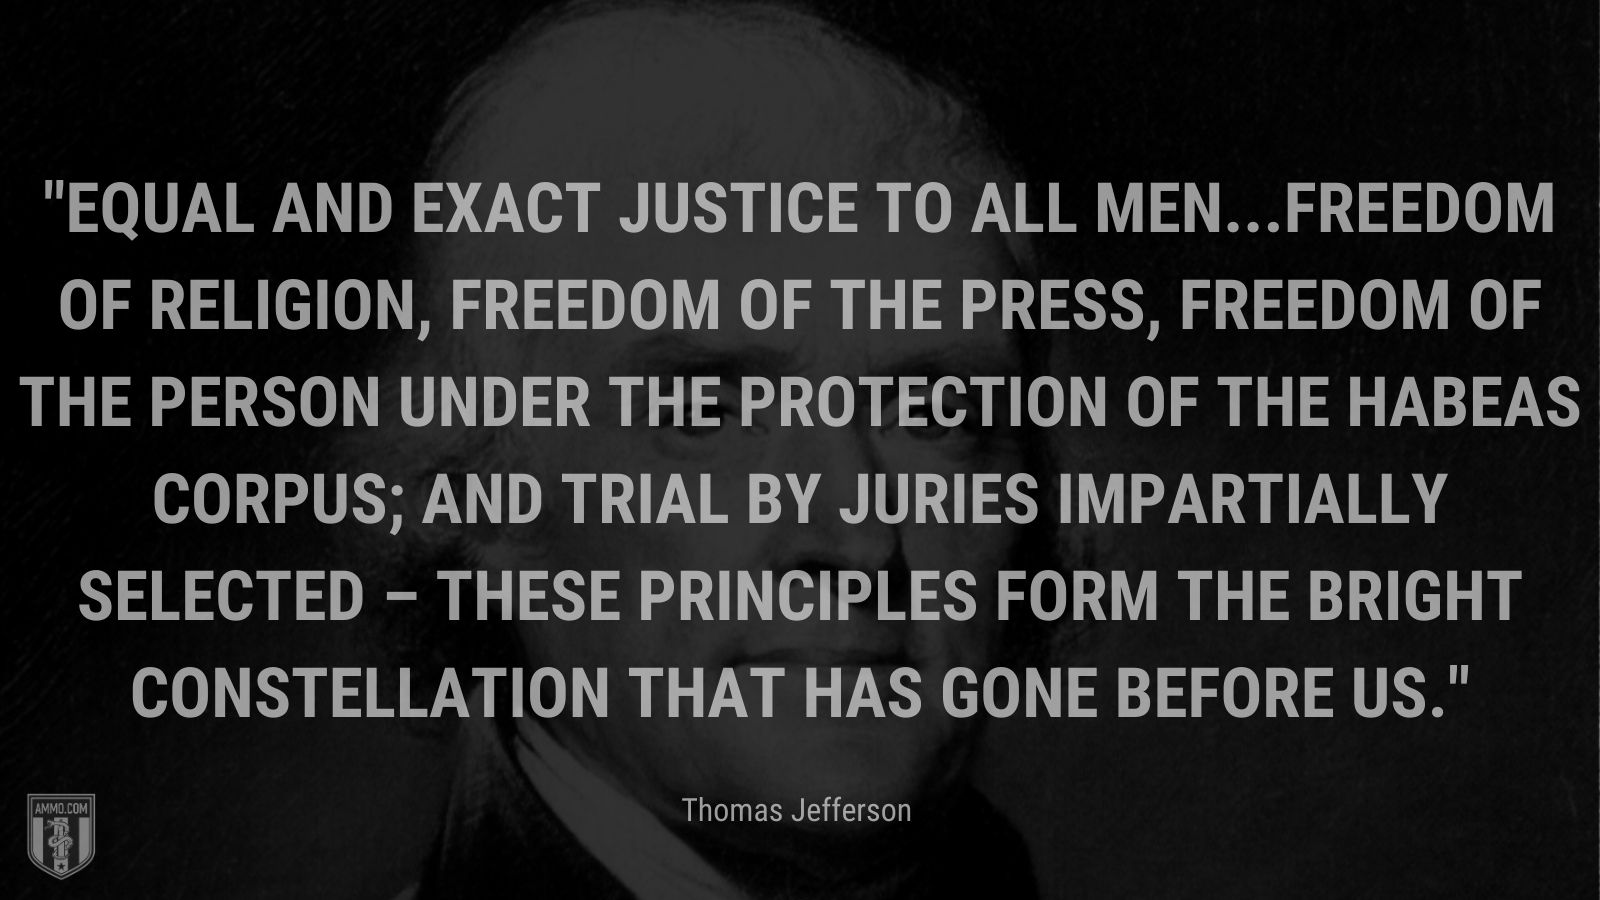 """""""Equal and exact justice to all men...freedom of religion, freedom of the press, freedom of the person under the protection of the habeas corpus; and trial by juries impartially selected – these principles form the bright constellation that has gone before us."""" - Thomas Jefferson"""